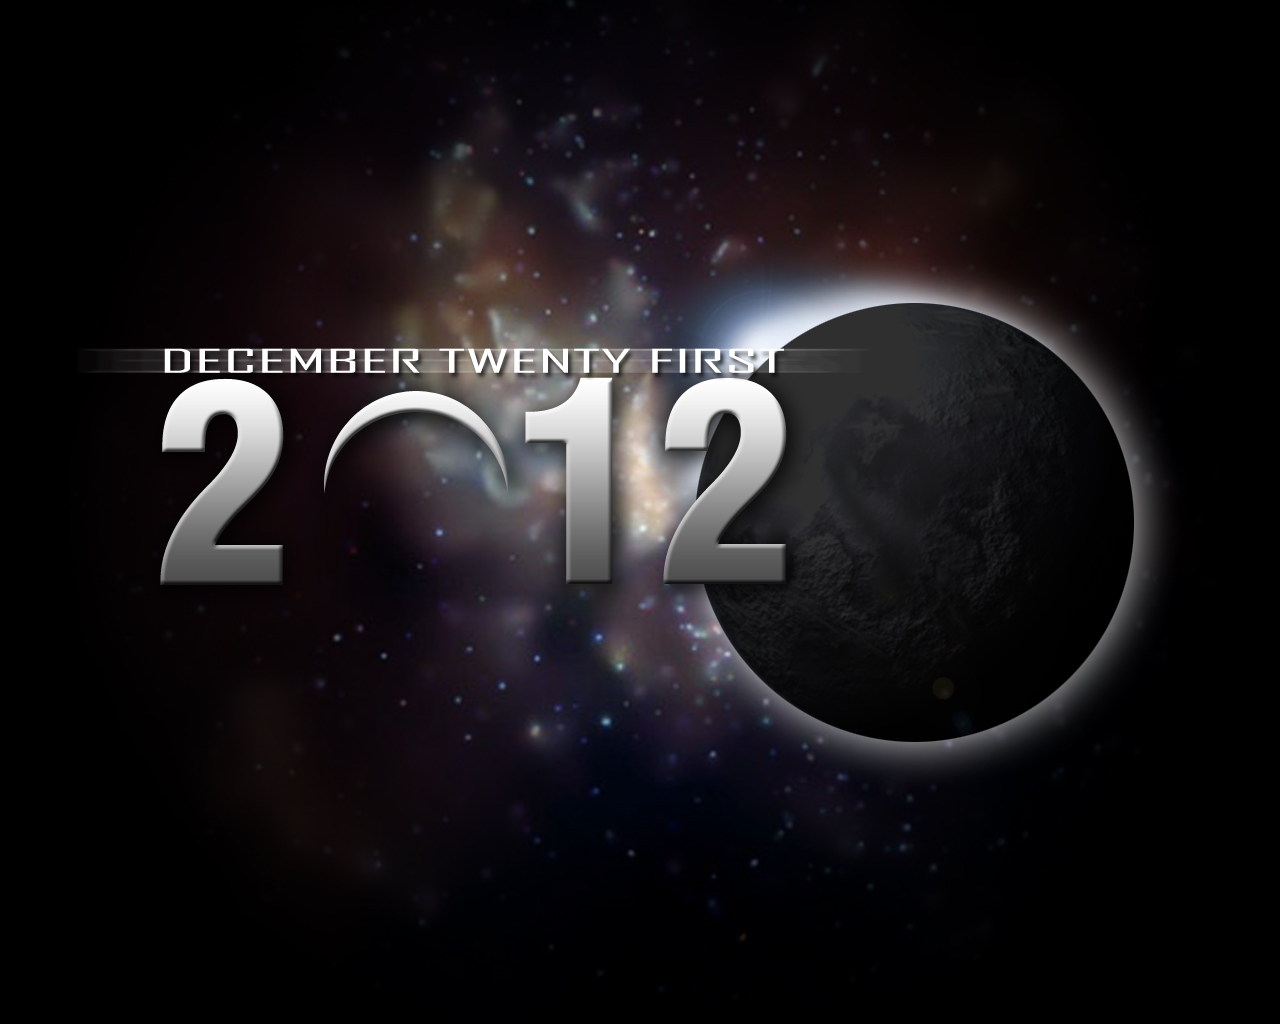 What will happen on December 21, 2012